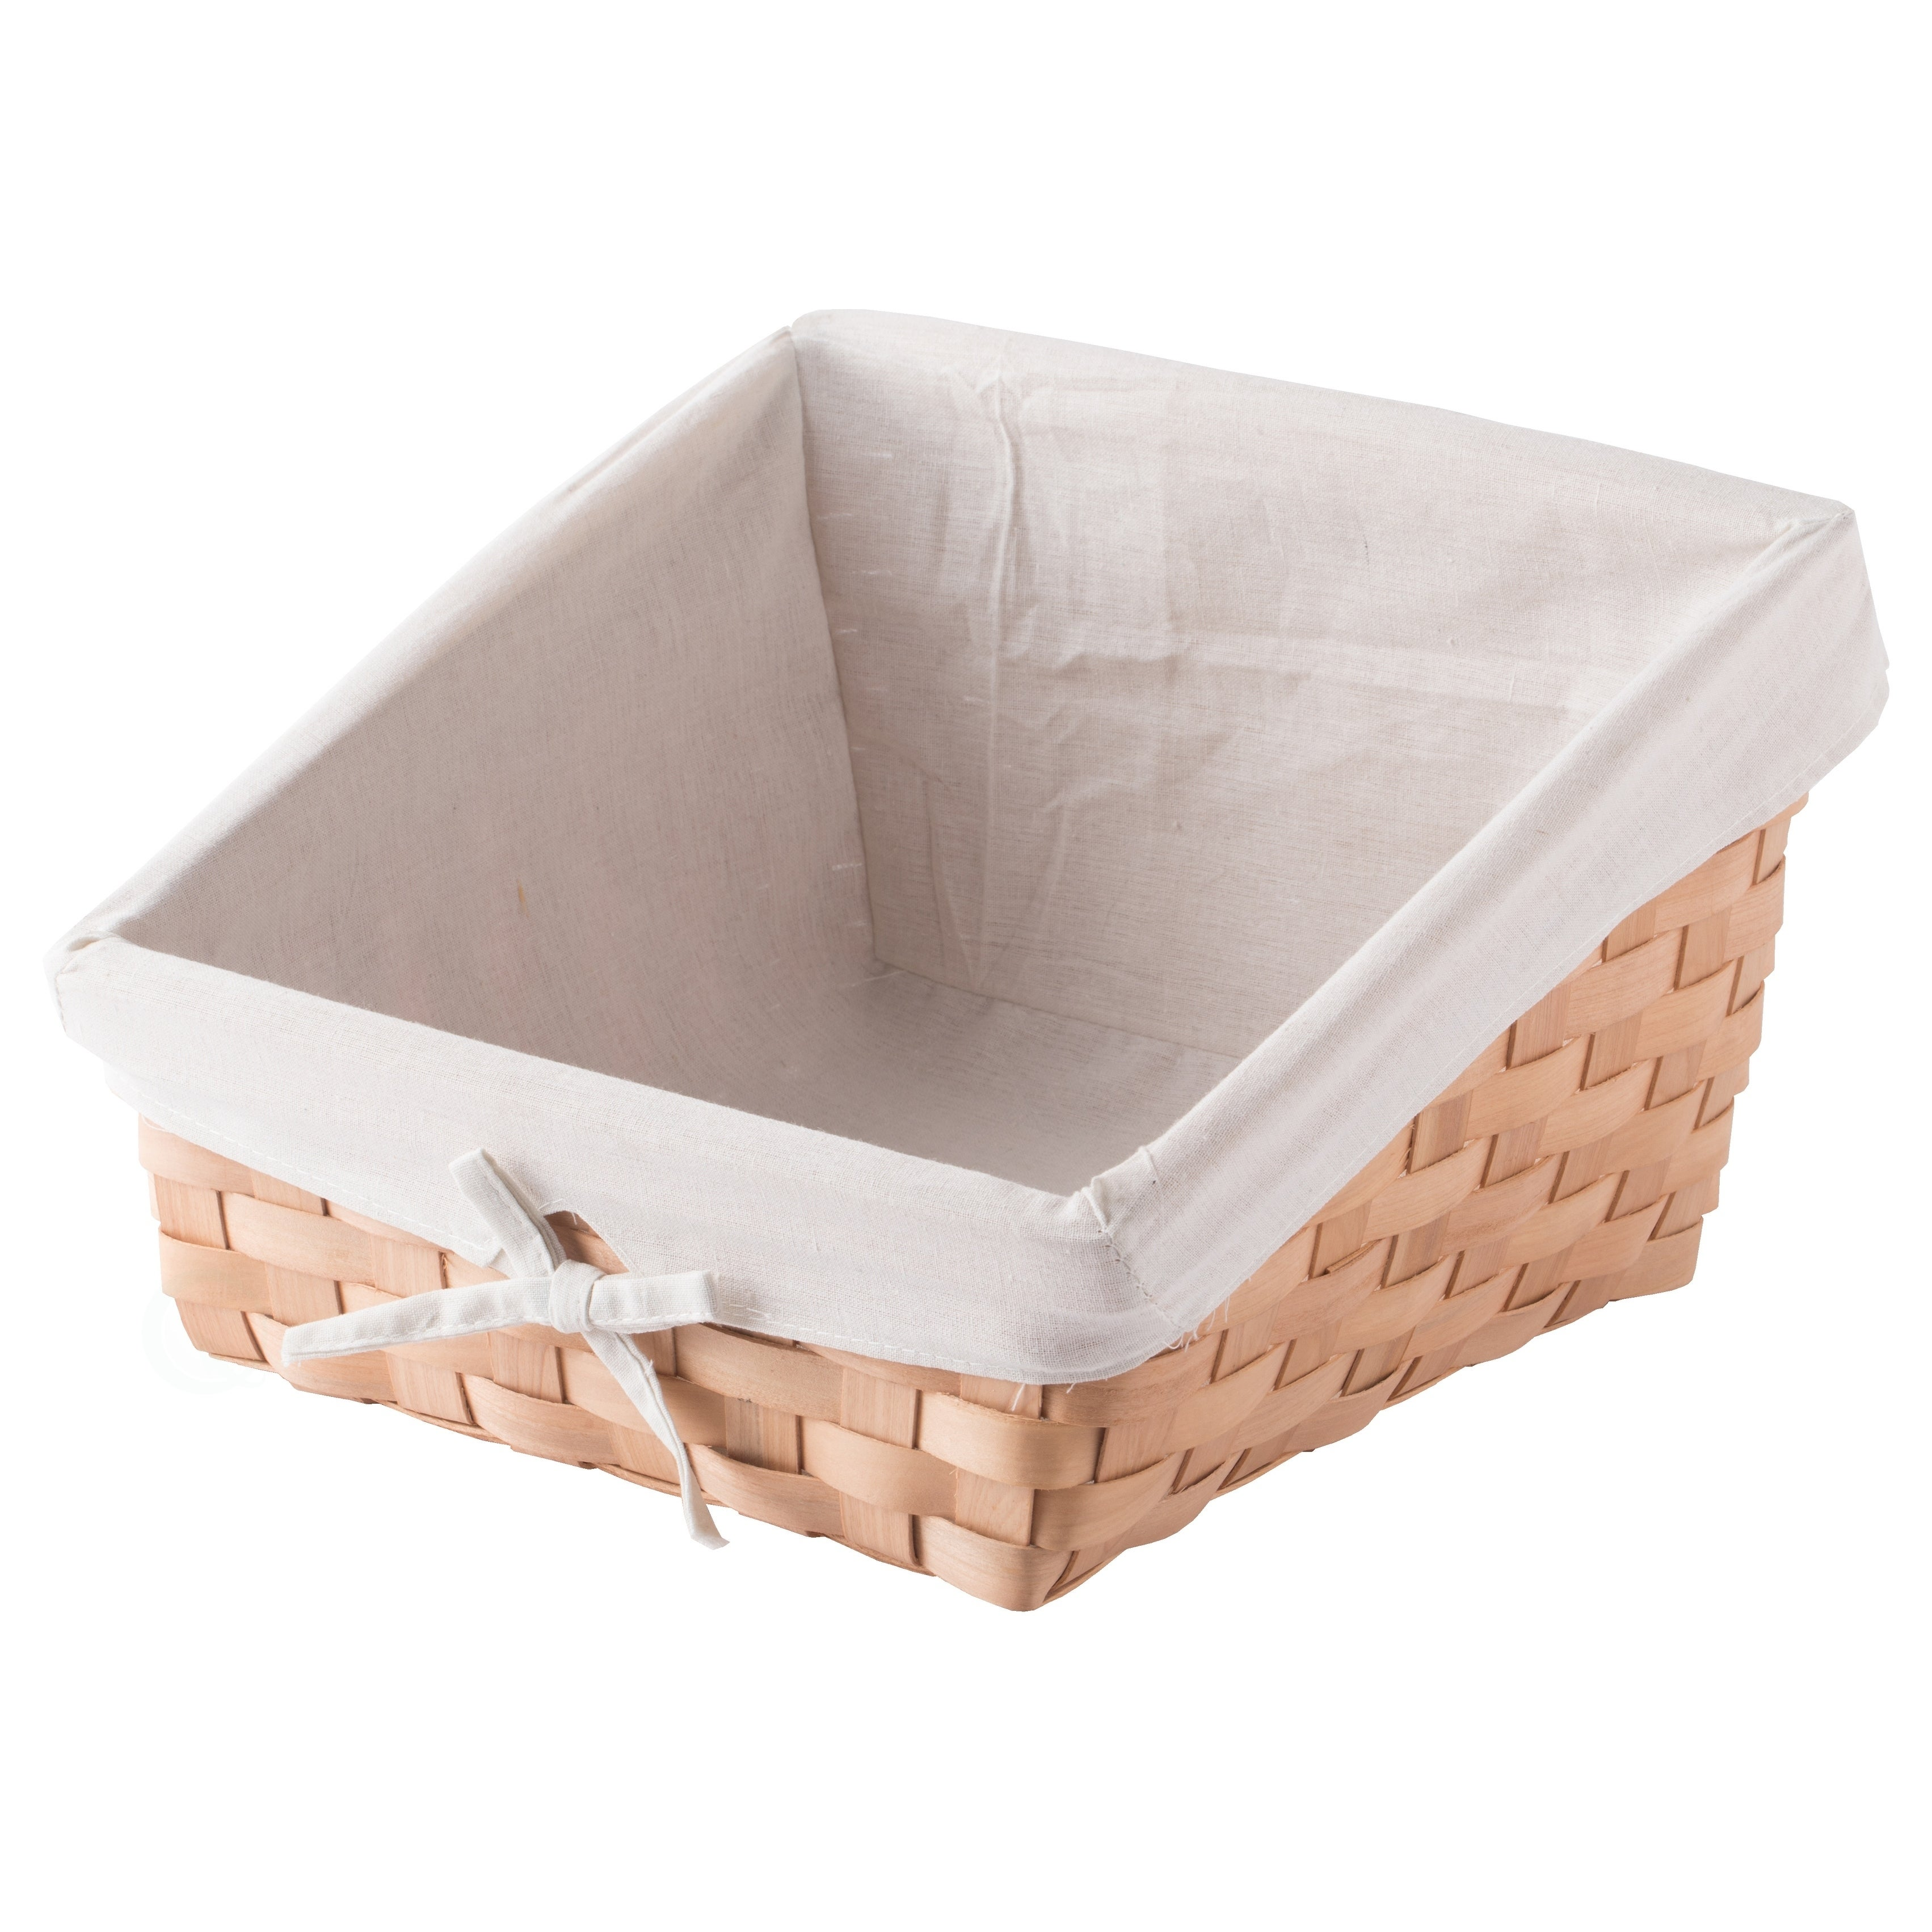 Vintiquewise Rectangular Willow Basket with White Fabric Lining